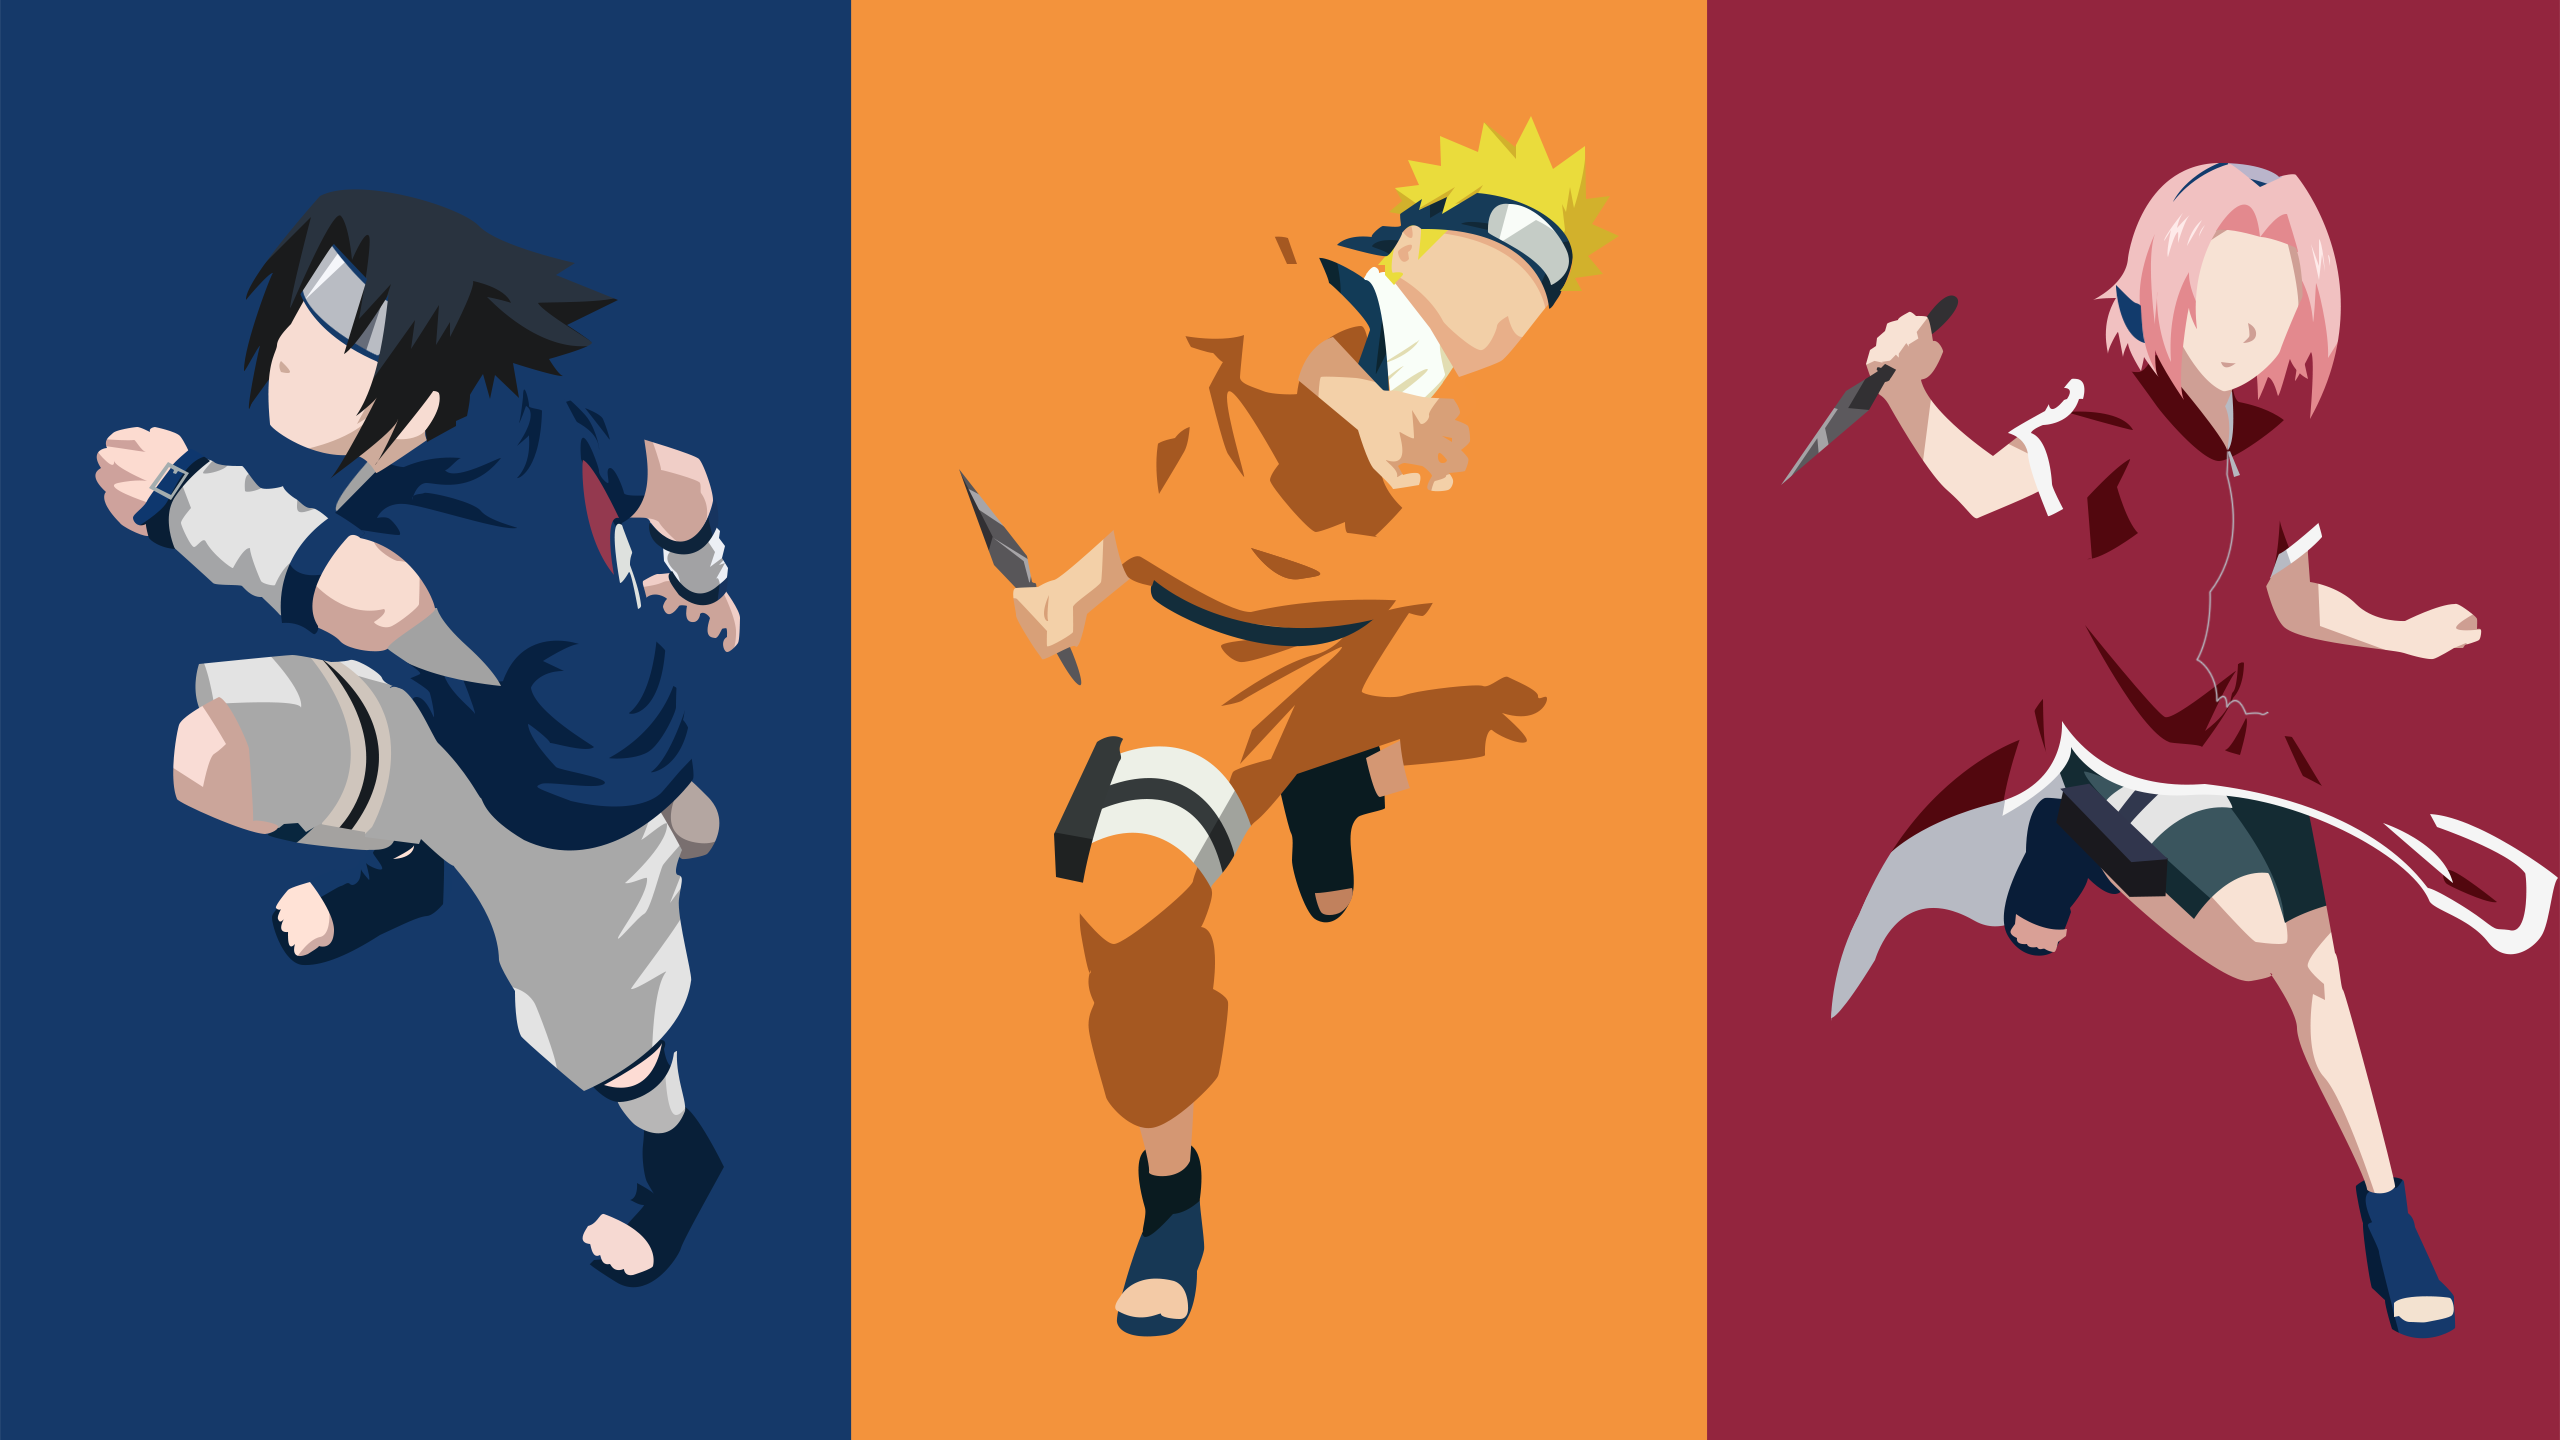 2560x1600 190 Kakashi Hatake HD Wallpapers Backgrounds